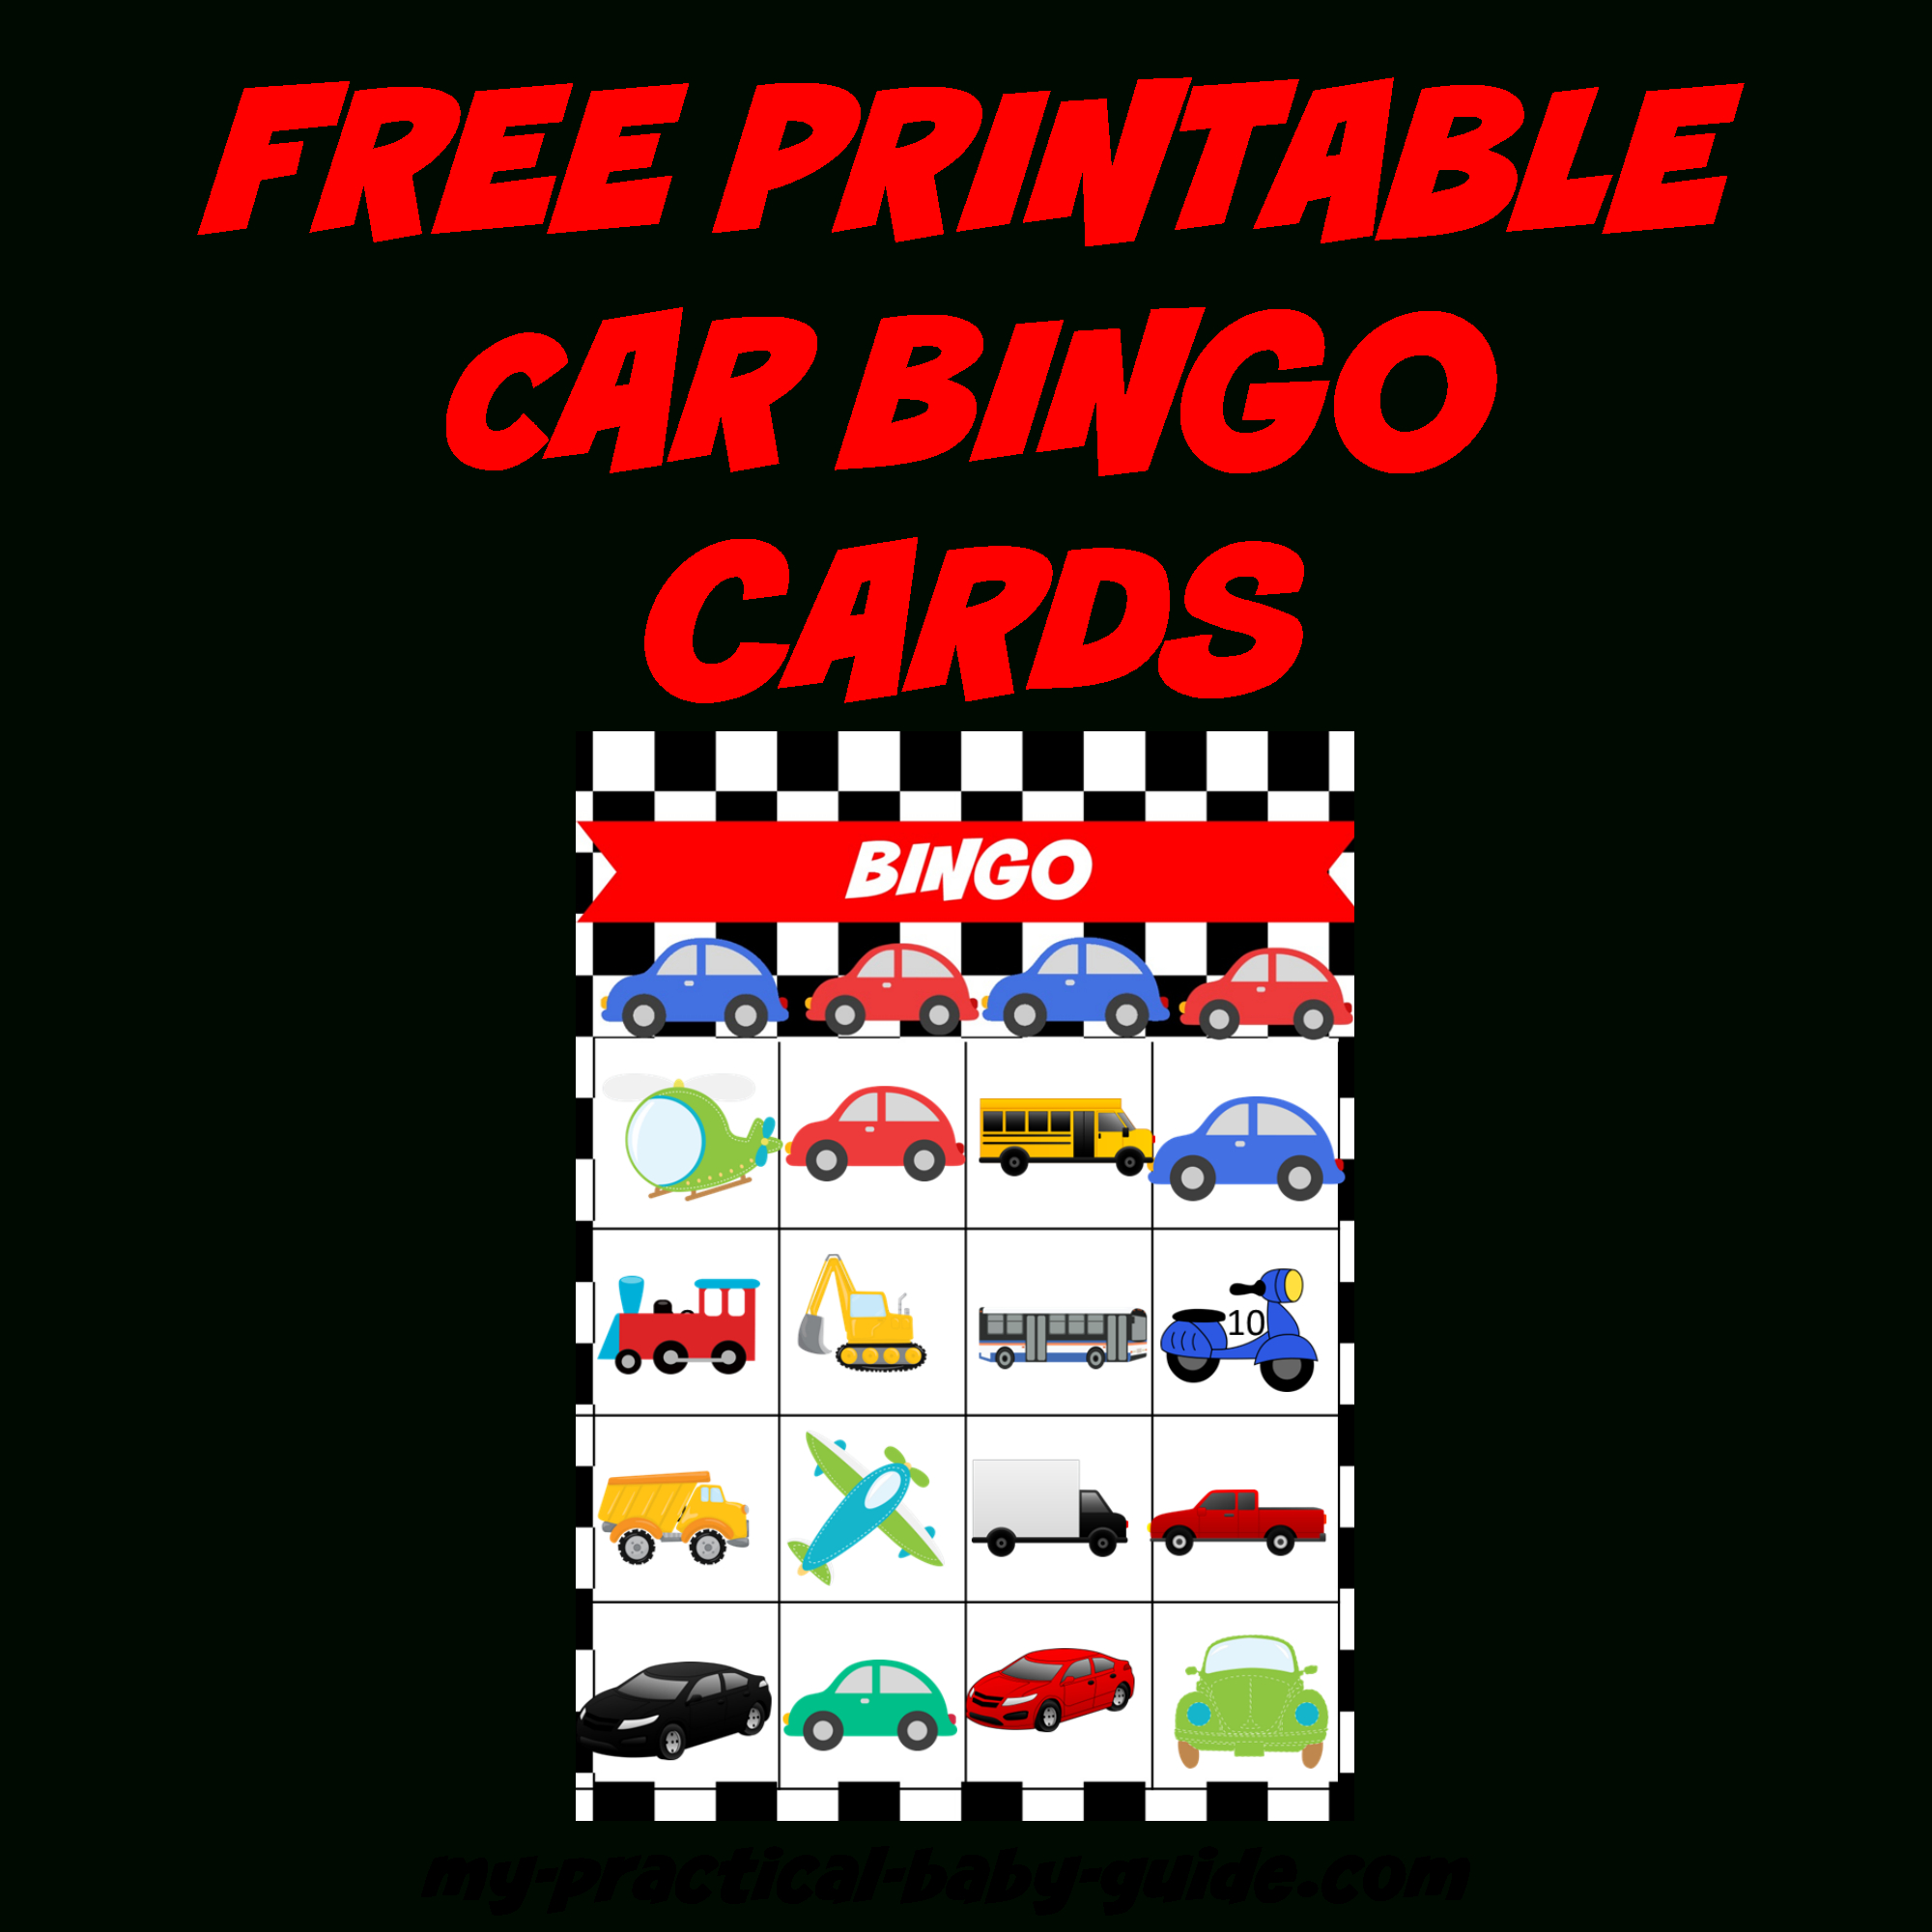 Coolest Car Birthday Ideas - My Practical Birthday Guide In 2019 - Free Printable Car Bingo